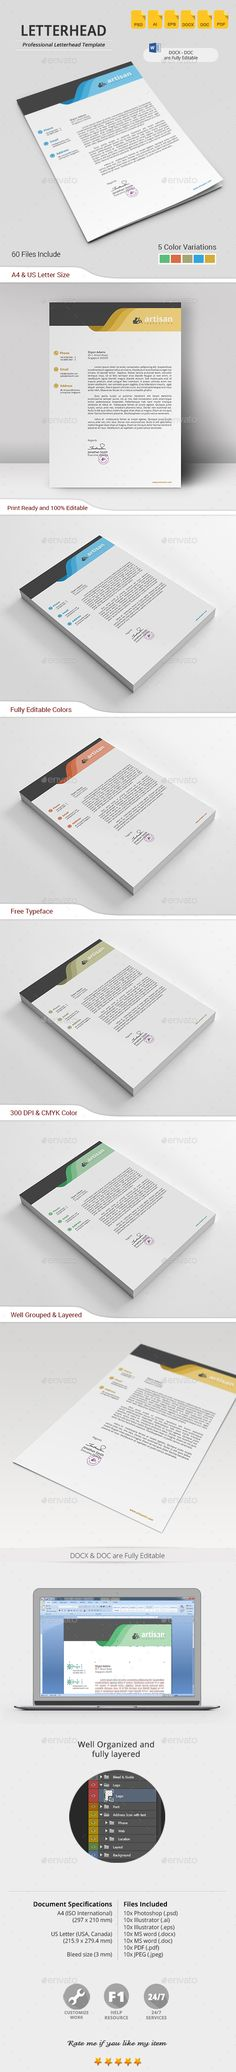 35+ Fabulous PSD Letterhead Templates to Print! Free \ Premium - free business letterhead templates download